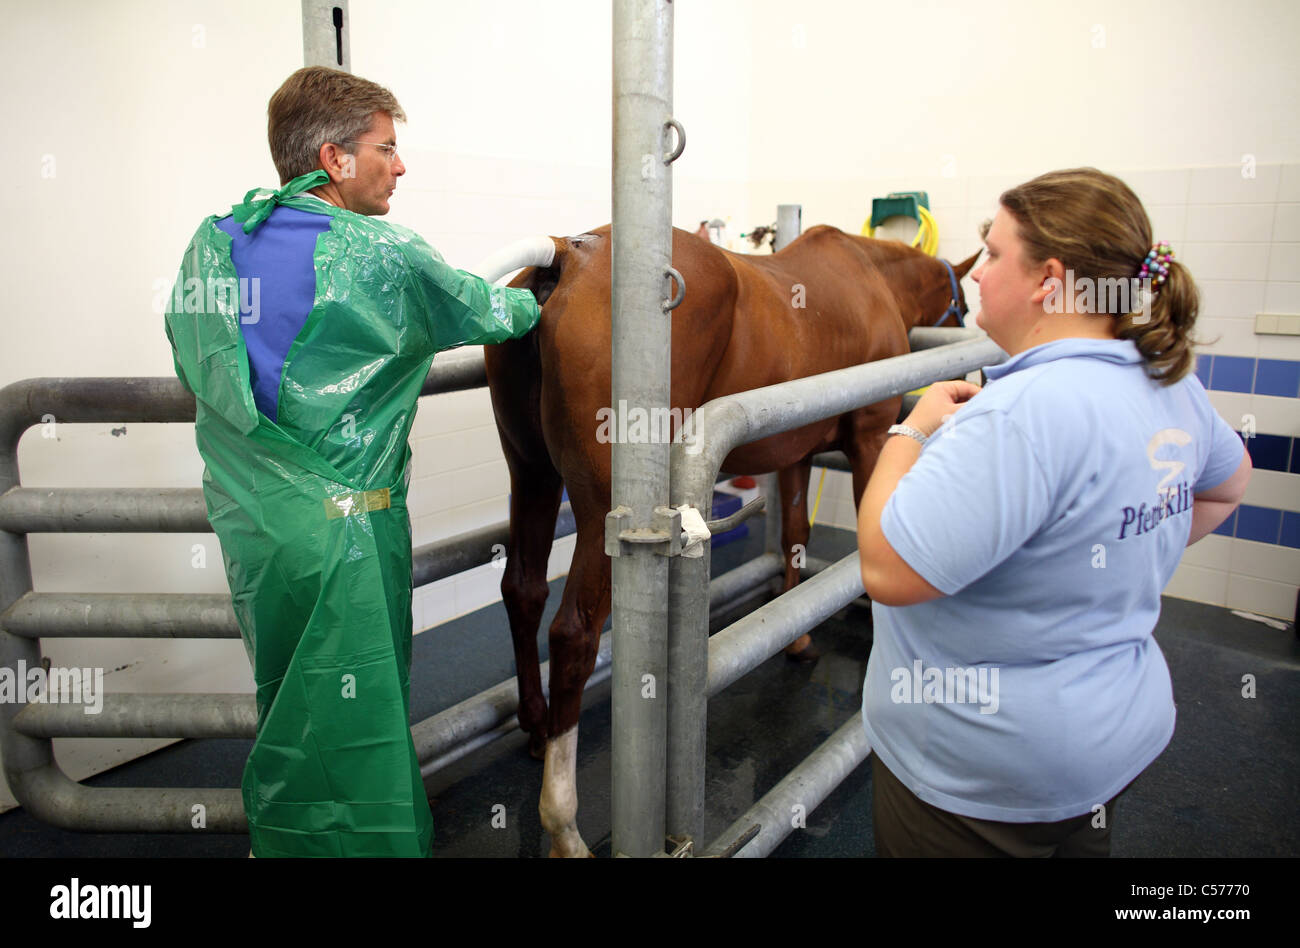 Rectal examination of a horse - Stock Image